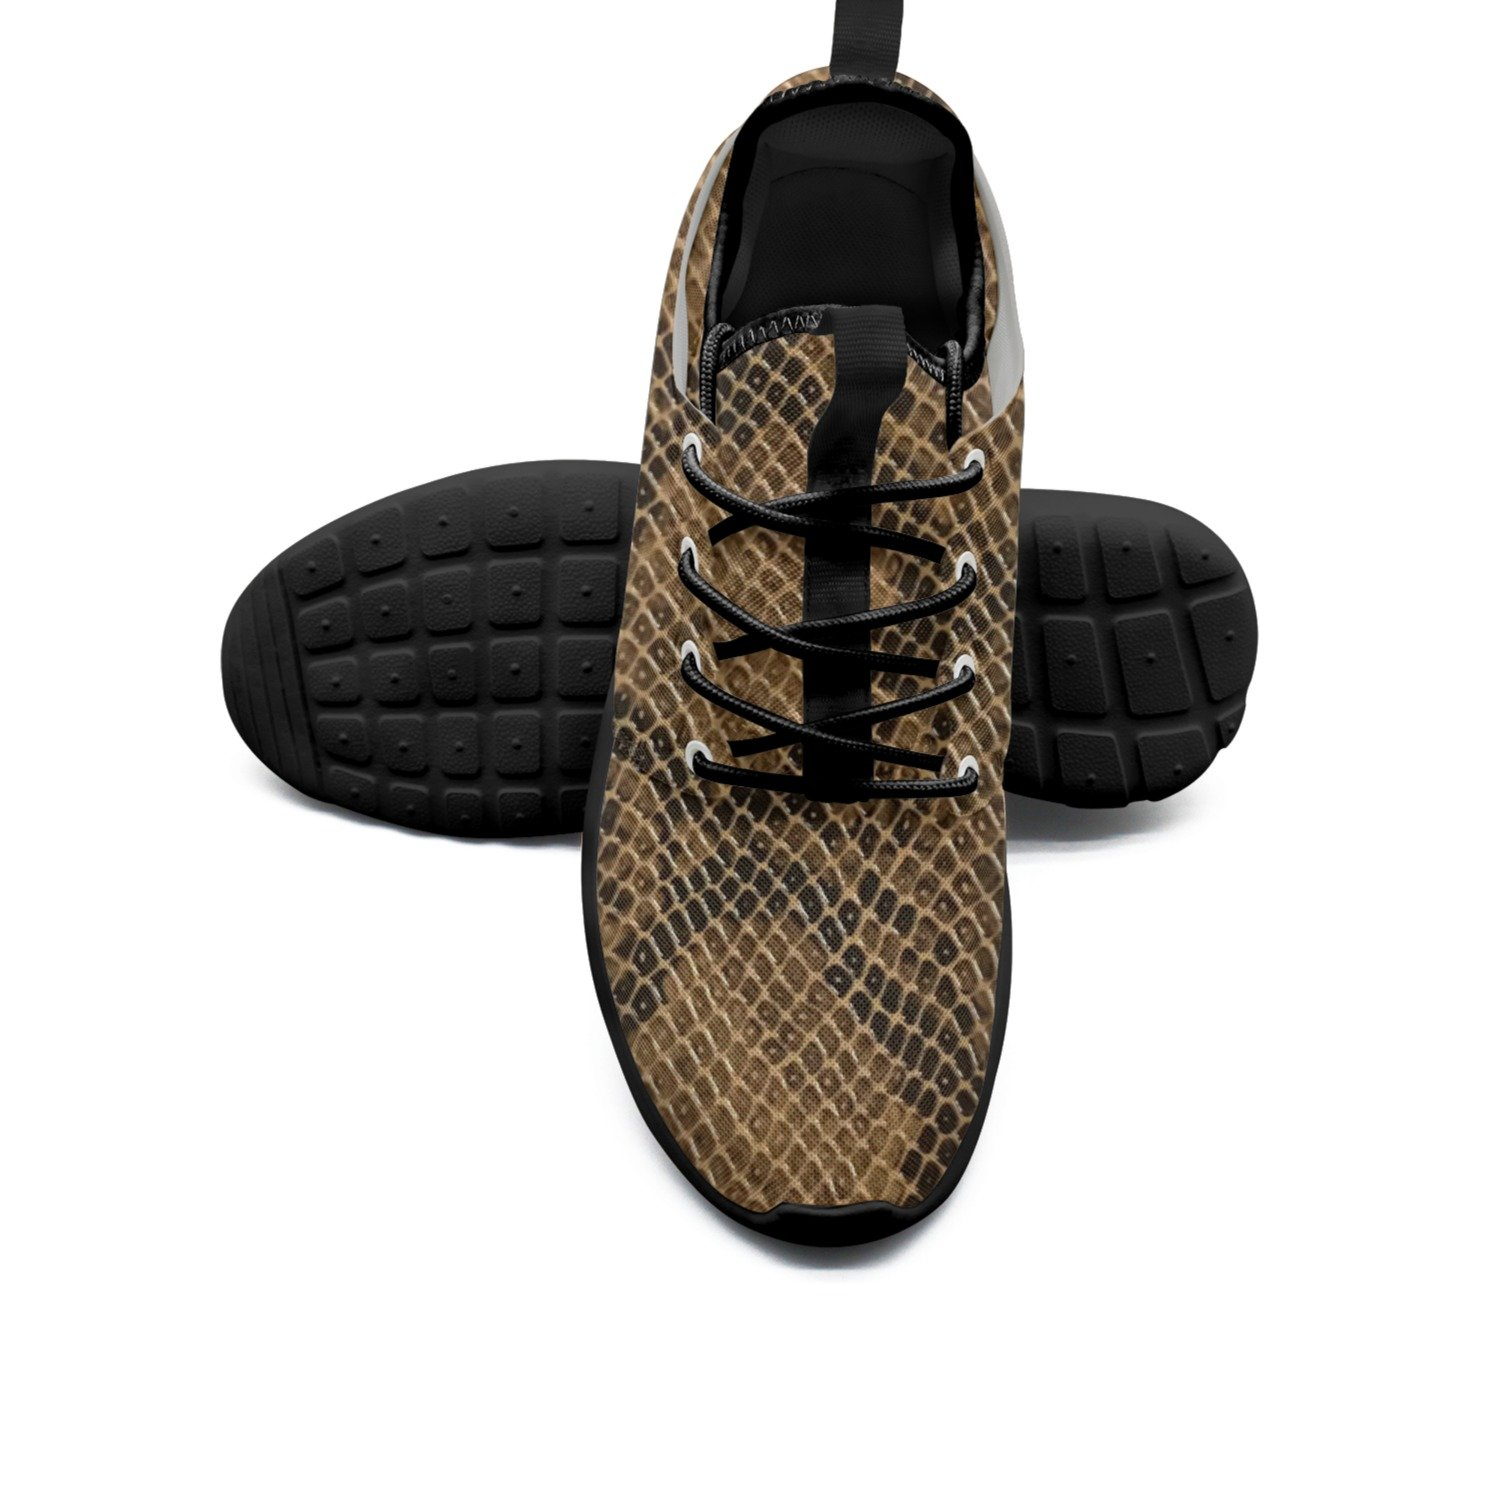 FUFGT Cobra Snake Skin Women's Net Fashion Running Shoes Unique Mini